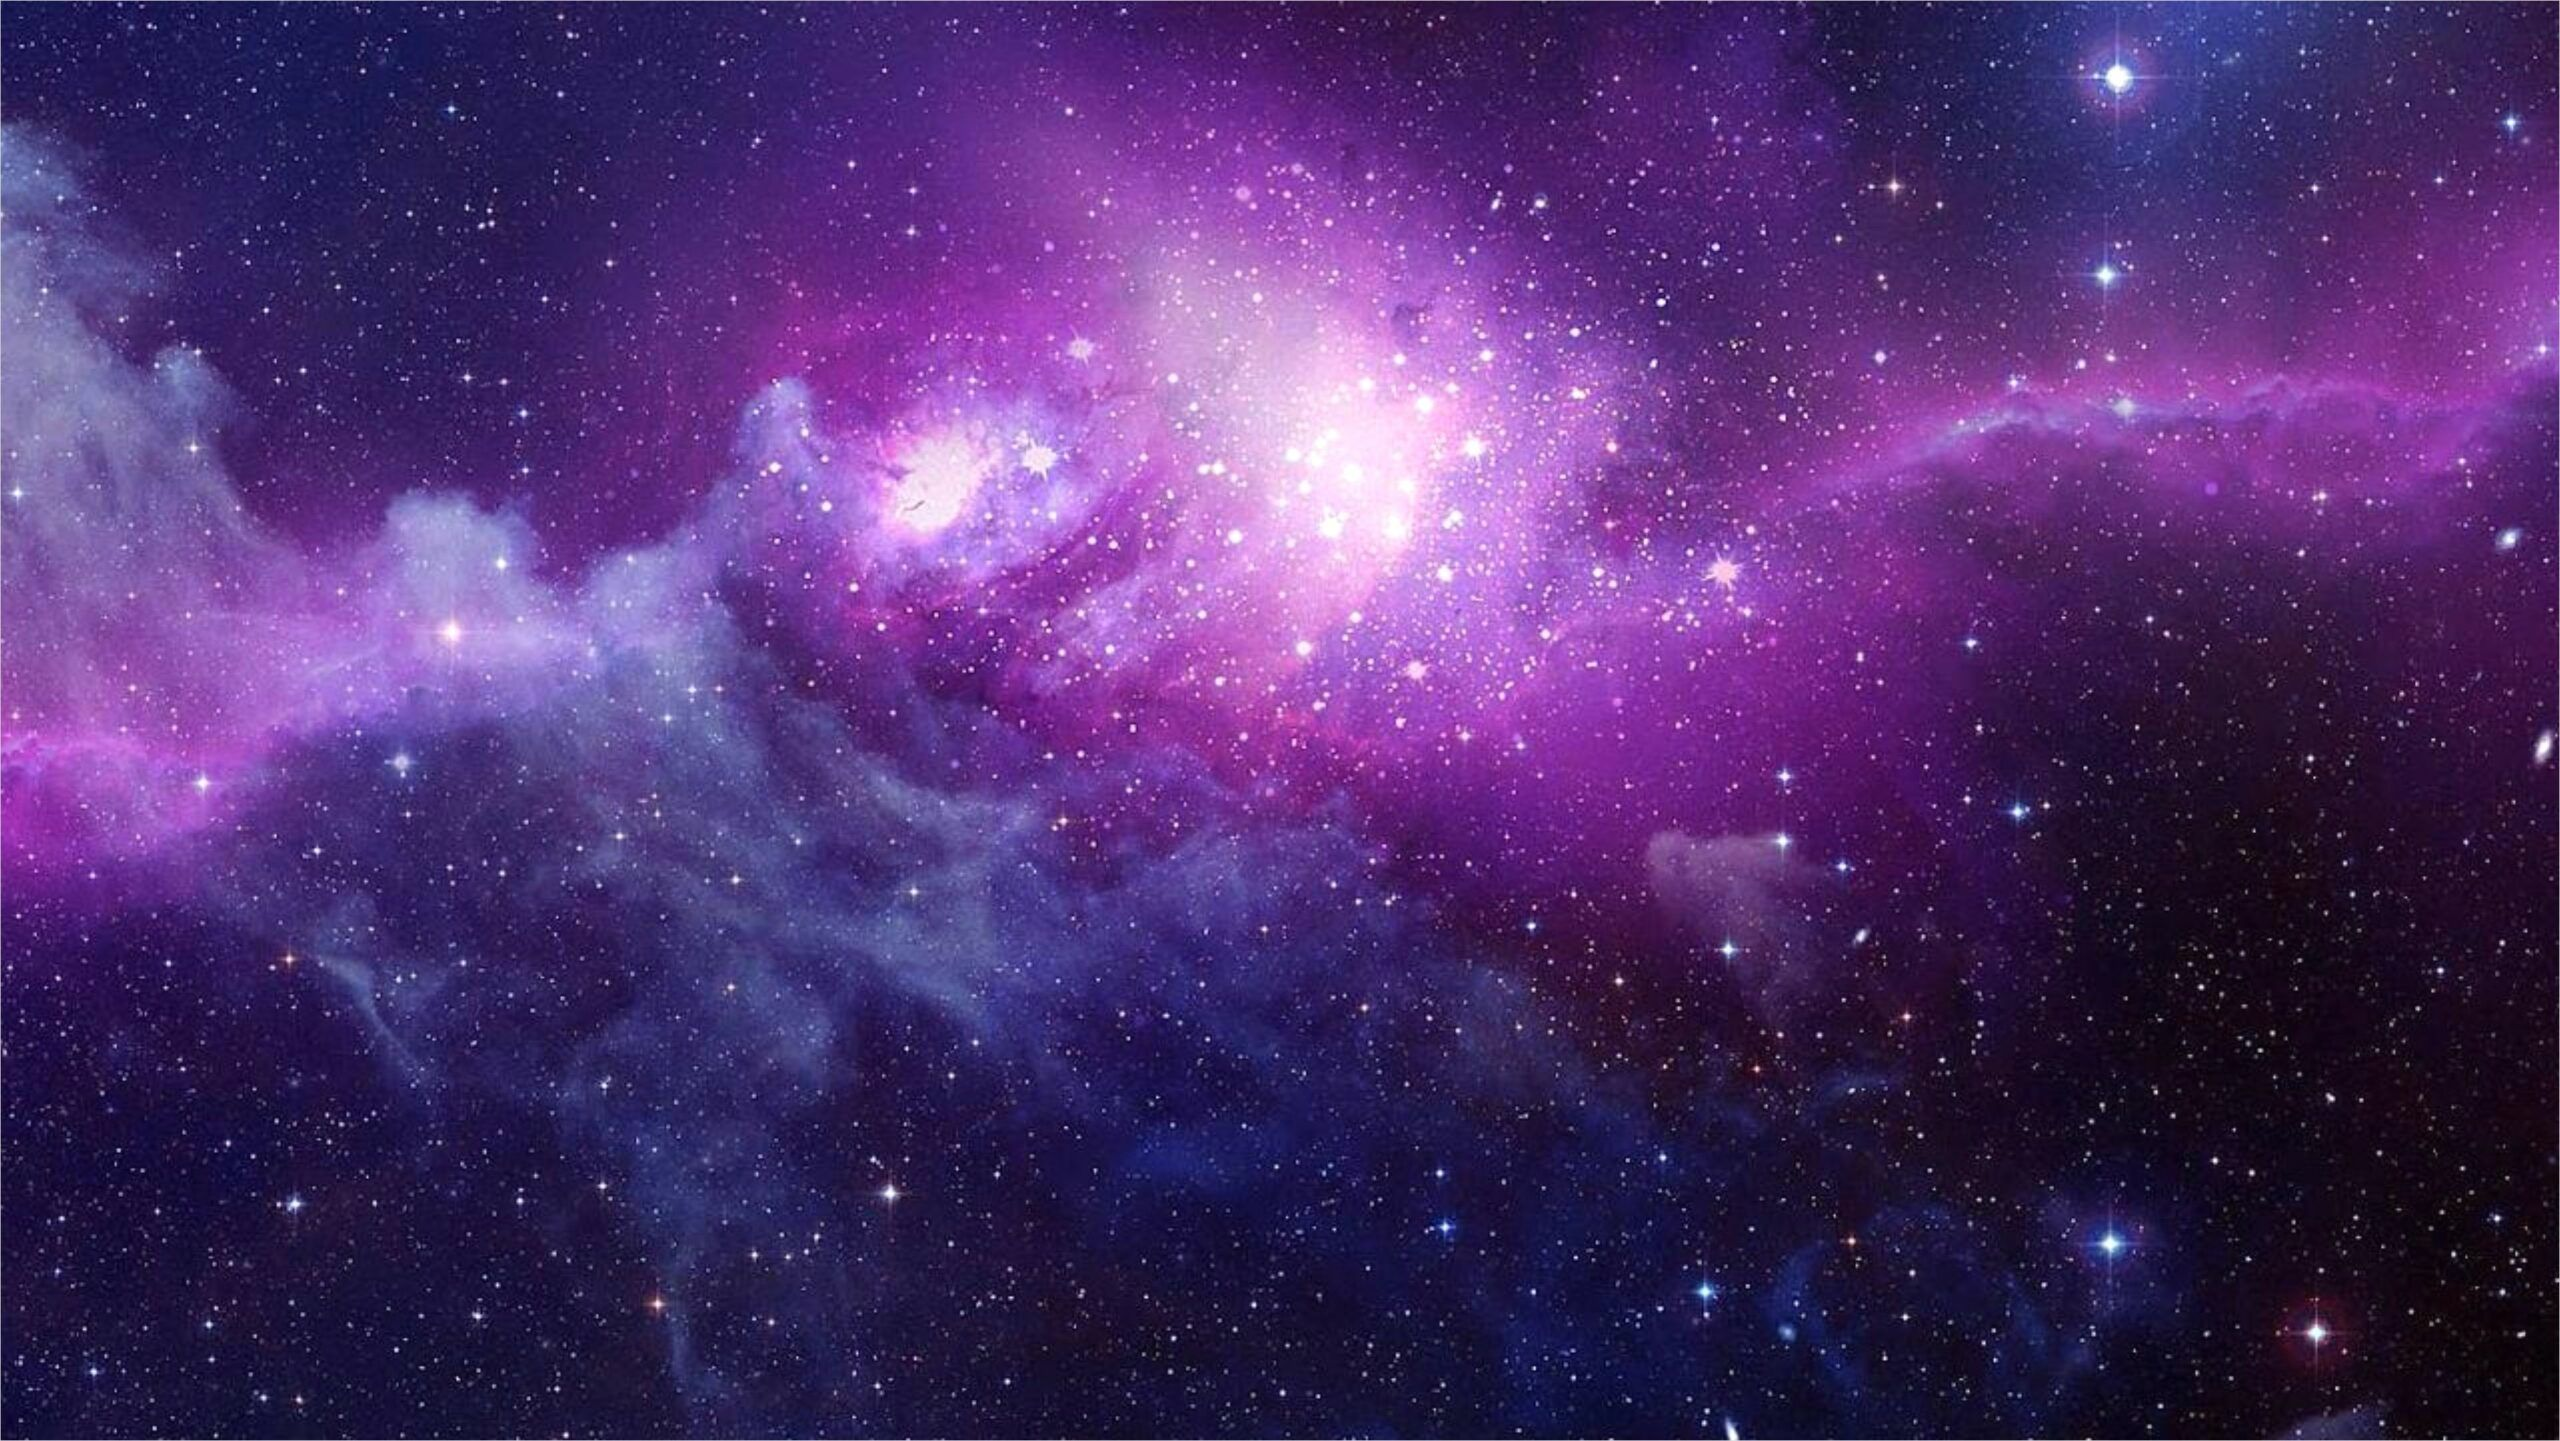 4k Hdr Space Wallpaper 3840 215 2160 In 2020 Purple Galaxy Wallpaper Planets Wallpaper Galaxy Wallpaper